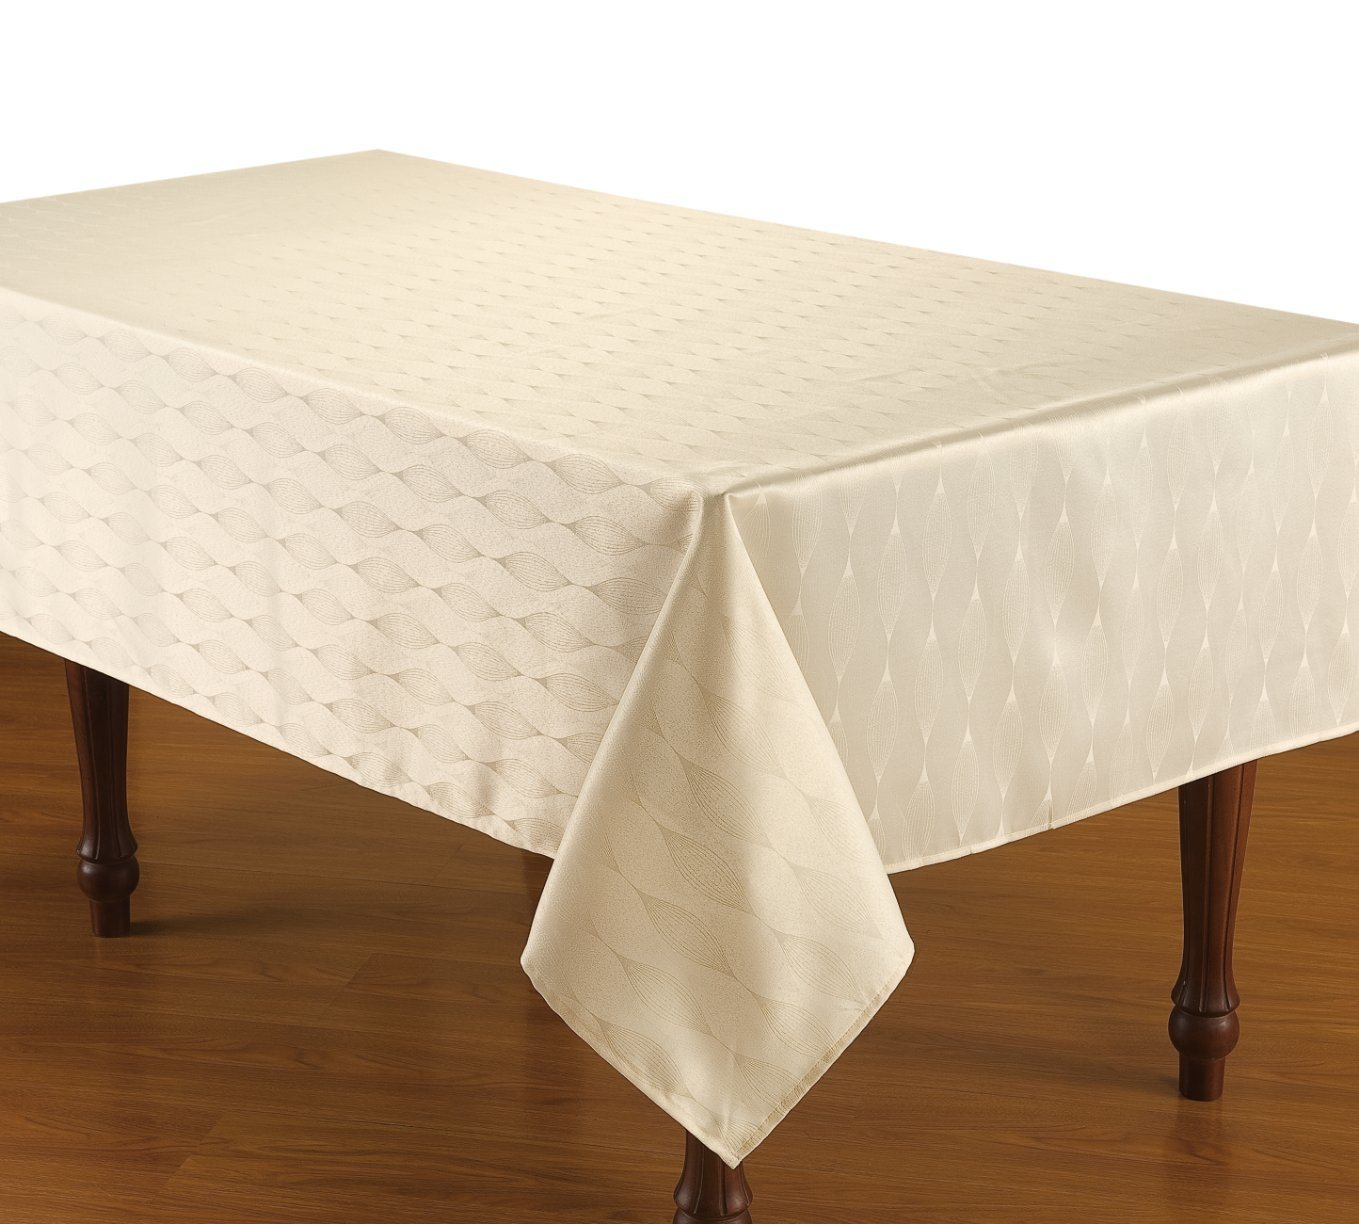 Table Cover pictures & photos